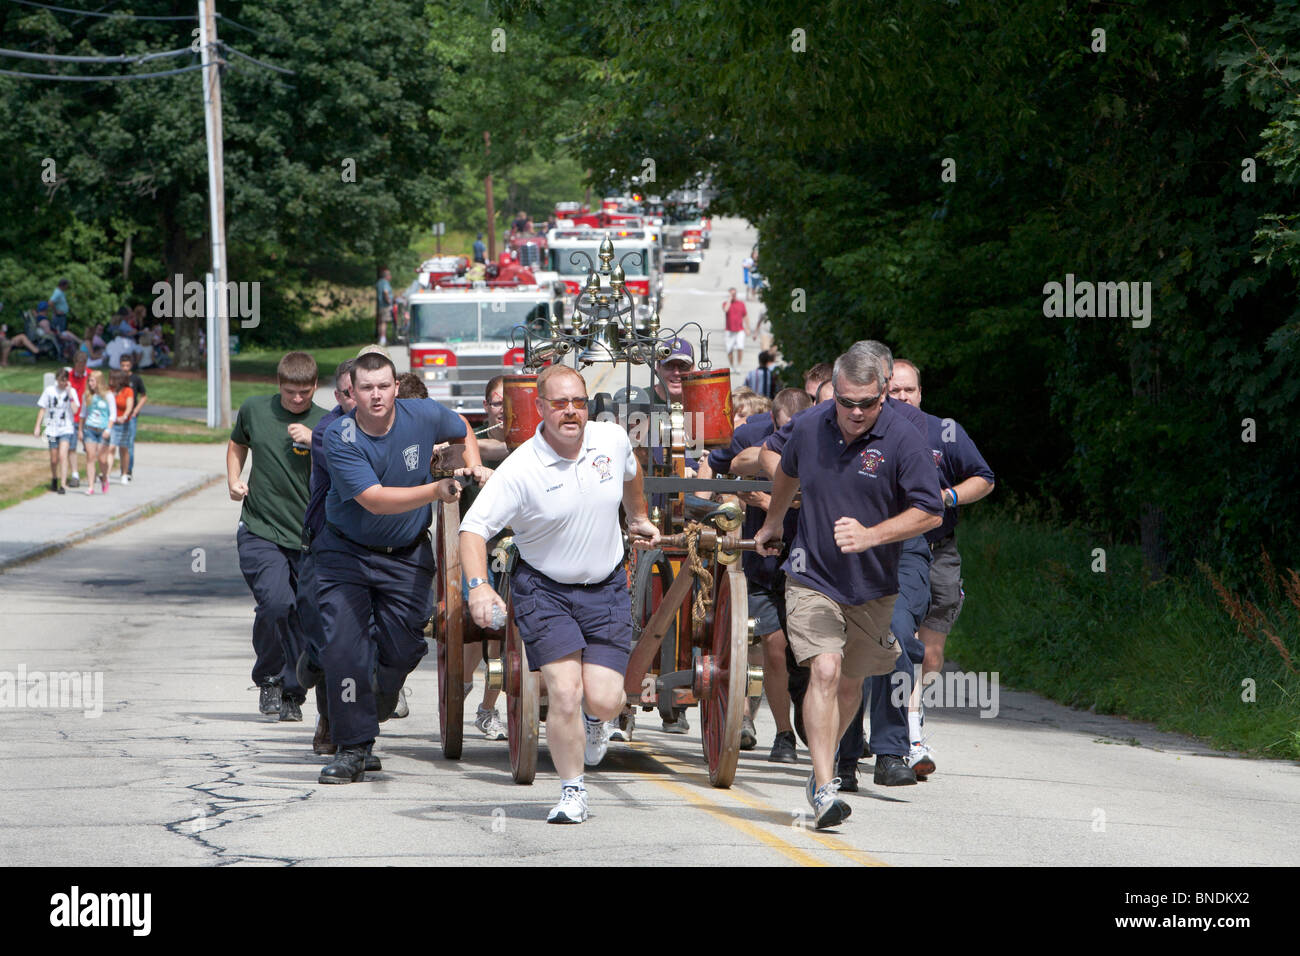 Volunteer Firefighters Pull Antique Pumper in July 4 Parade - Stock Image